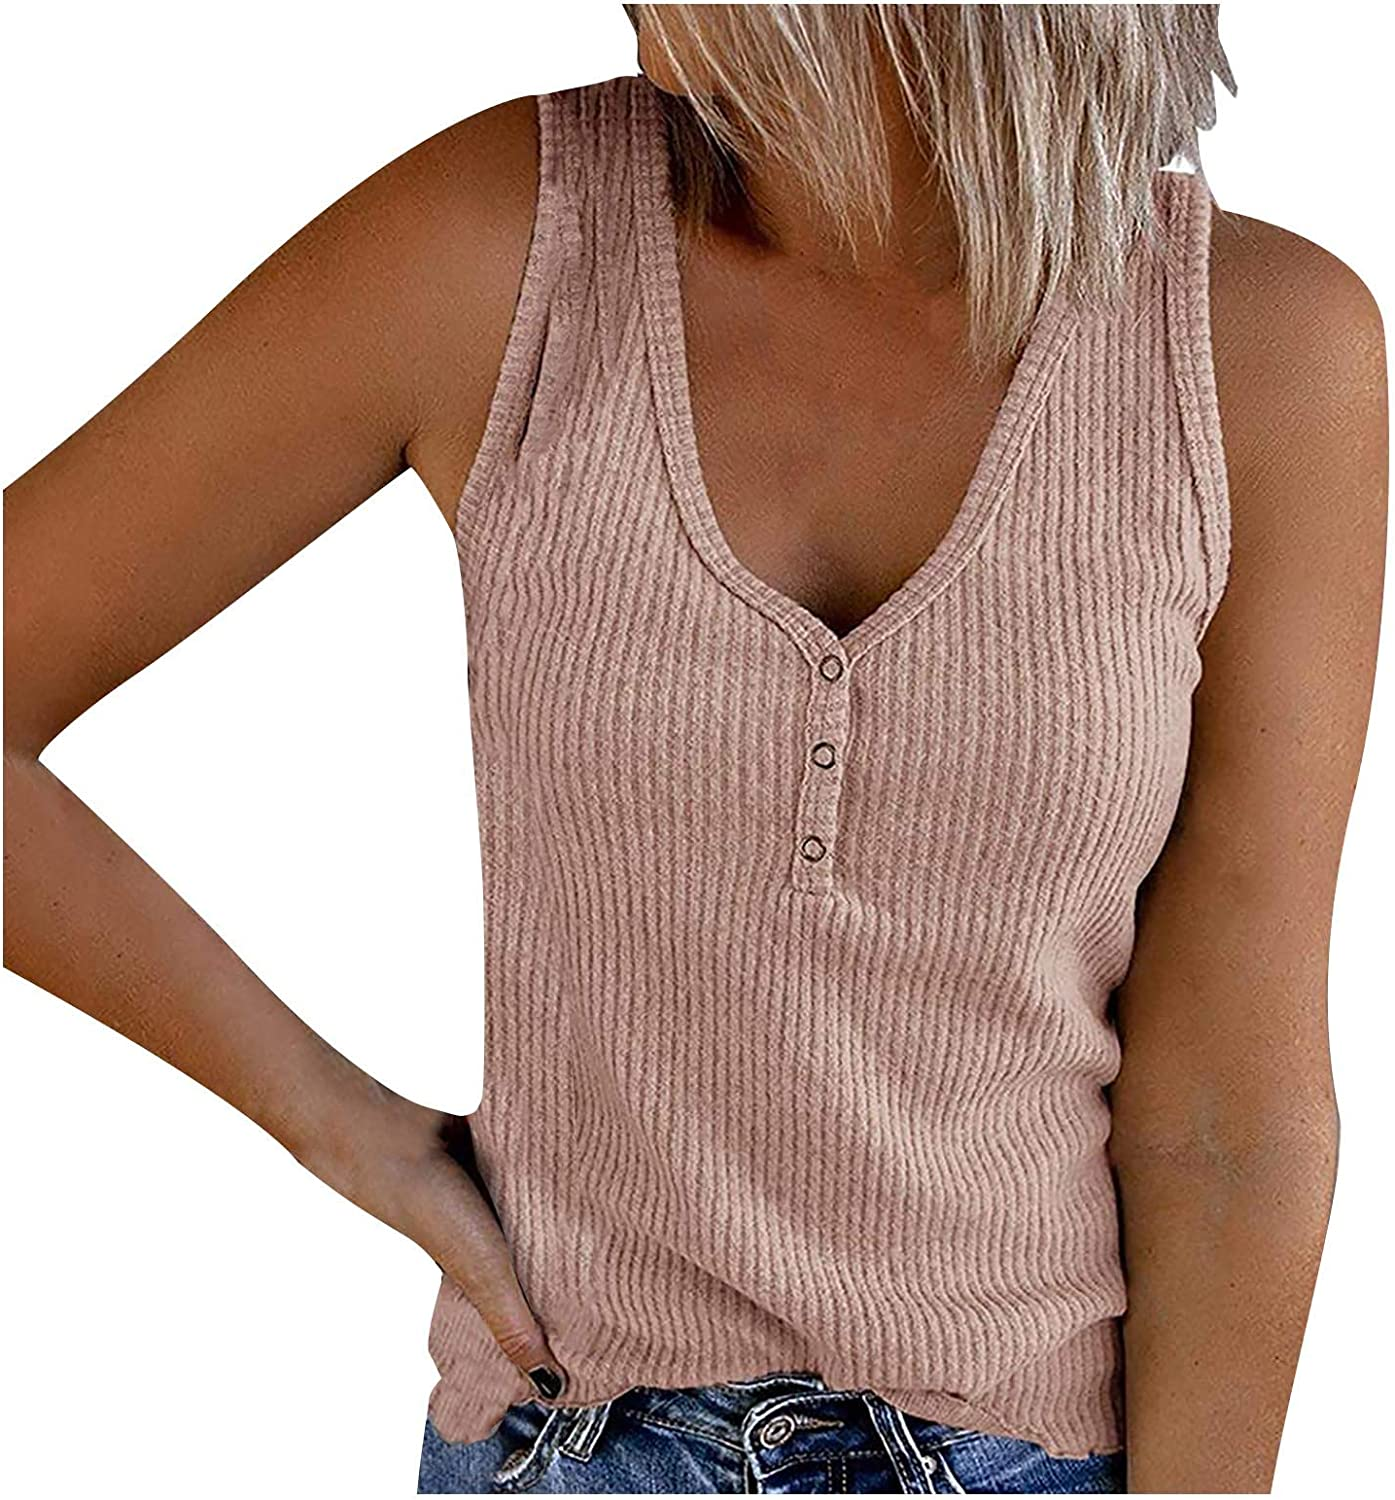 Lovor Summer Tank Tops for Women Waffle Knit Tunic Tops V Neck Henley Sleeveless Button Up Shirts Loose Blouses Vests